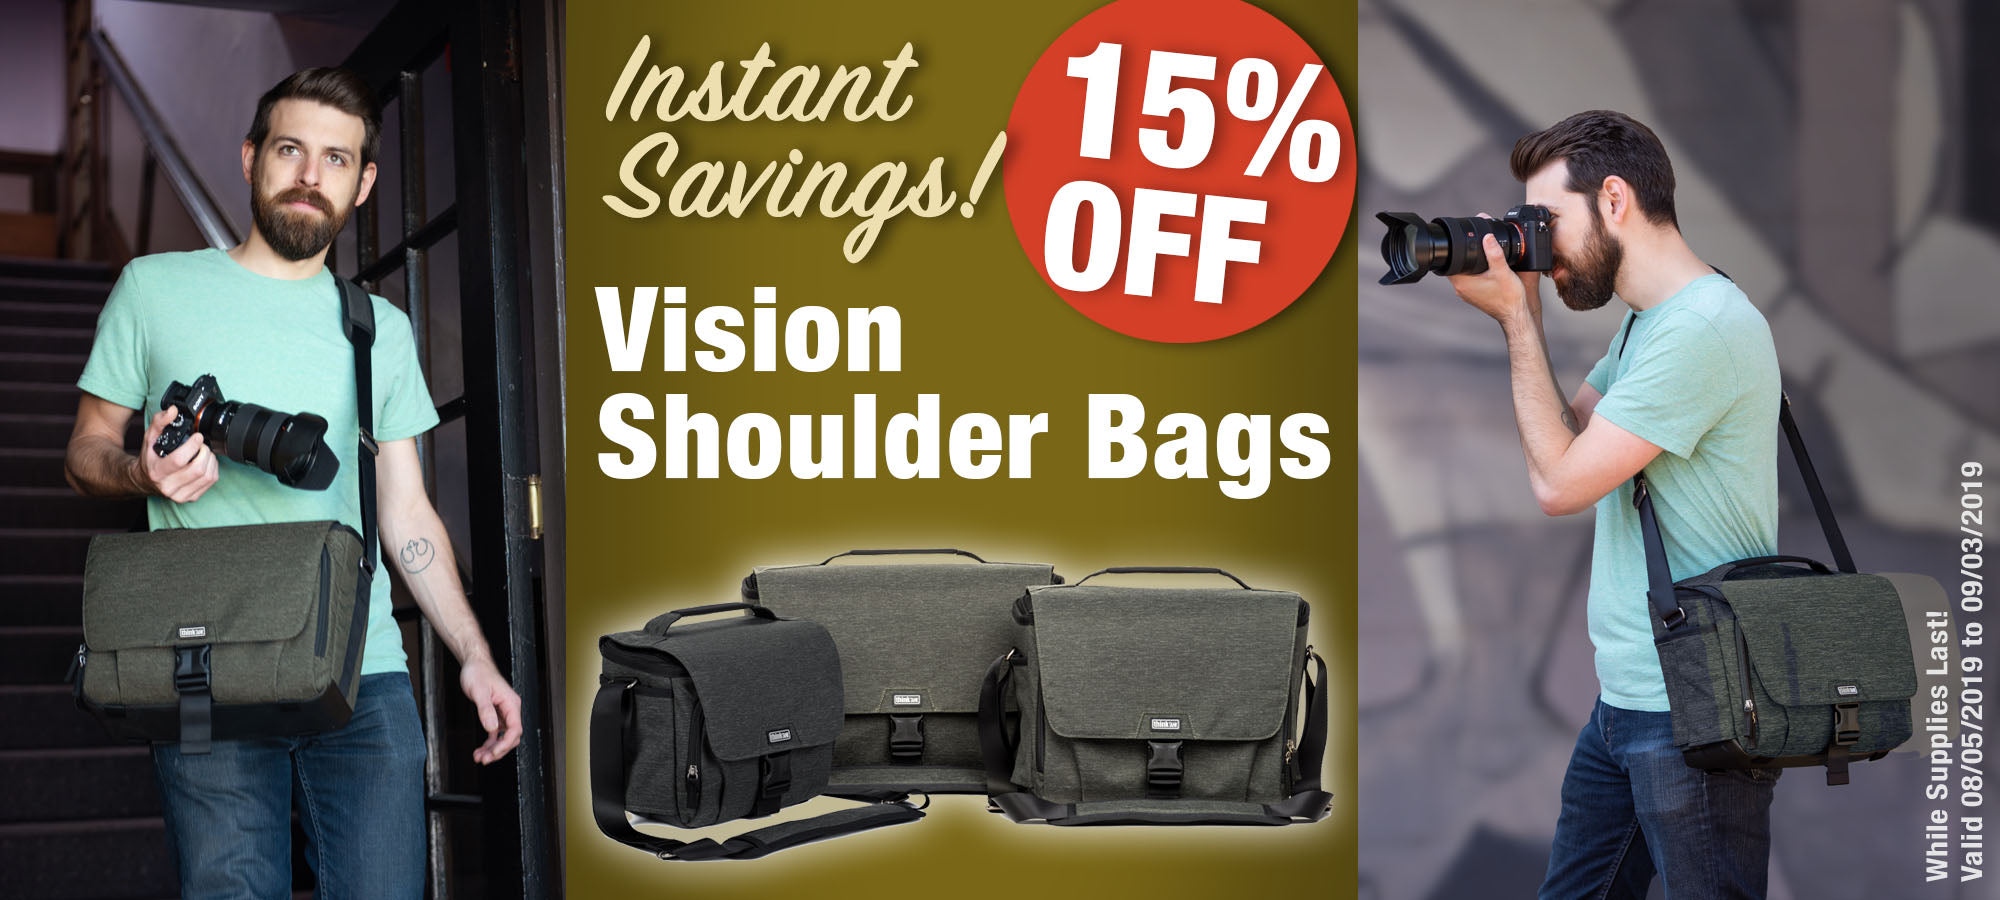 15% off Vision Shoulder Bags!